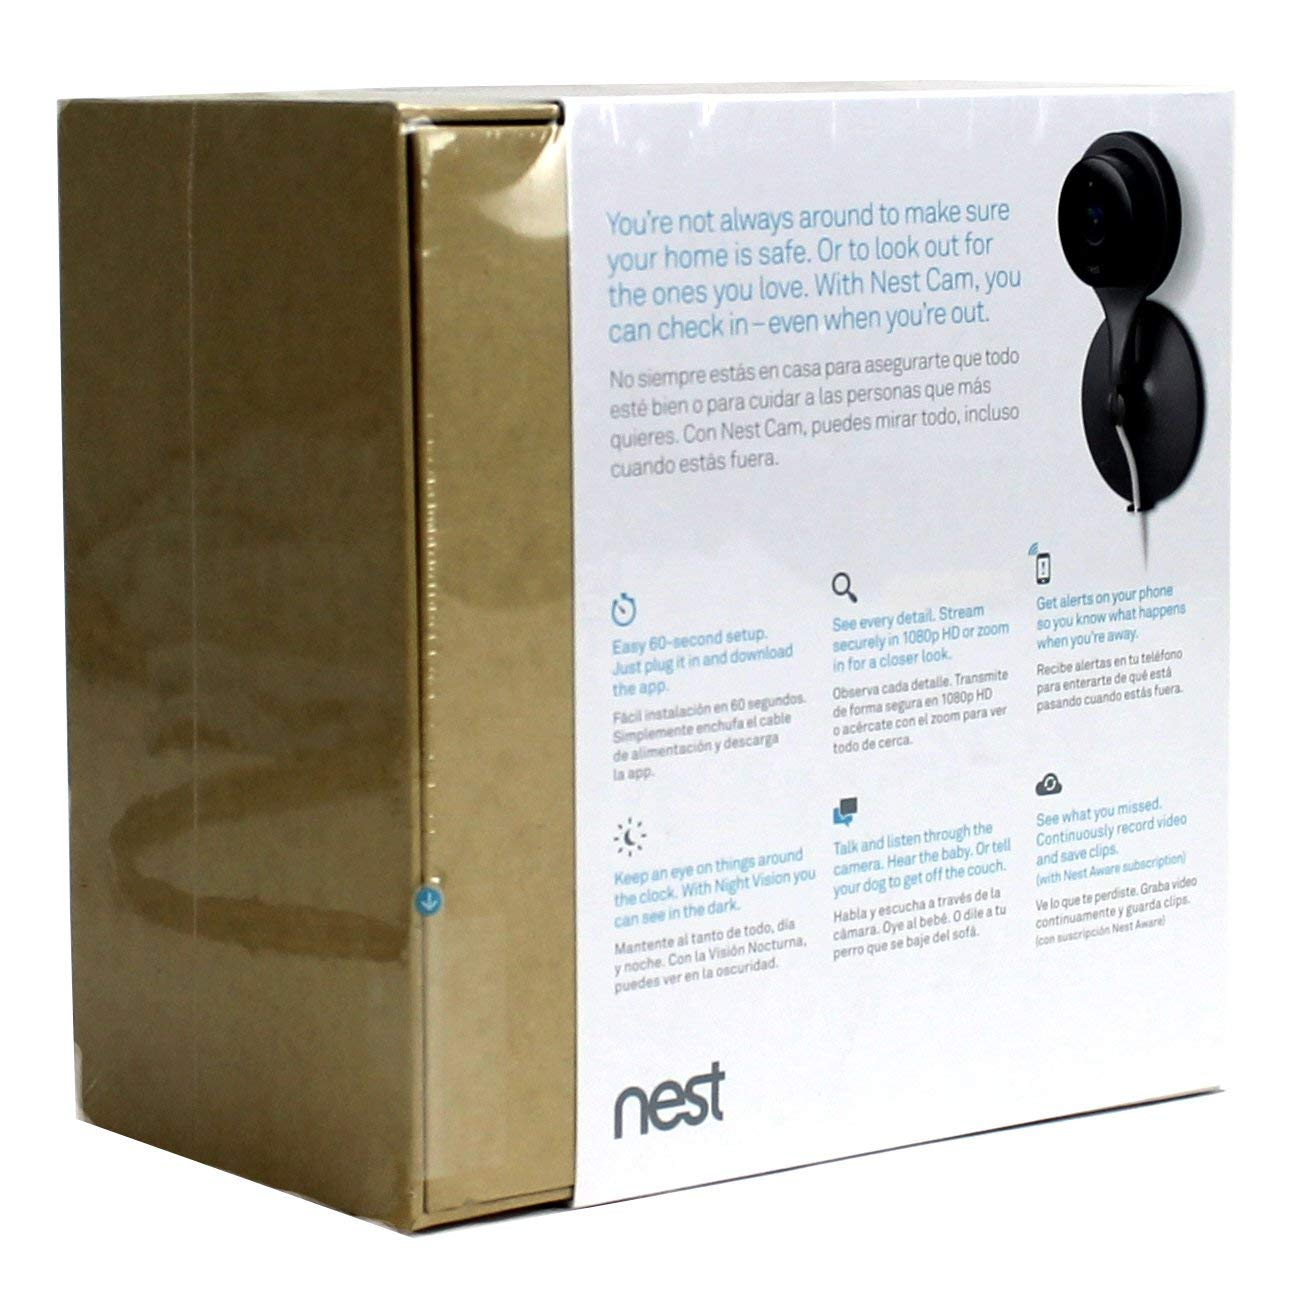 Amazon.com: Nest Cam Wi-Fi Wireless HD Indoor Video Monitoring Phone Surveillance Camera (6 Pack): Electronics